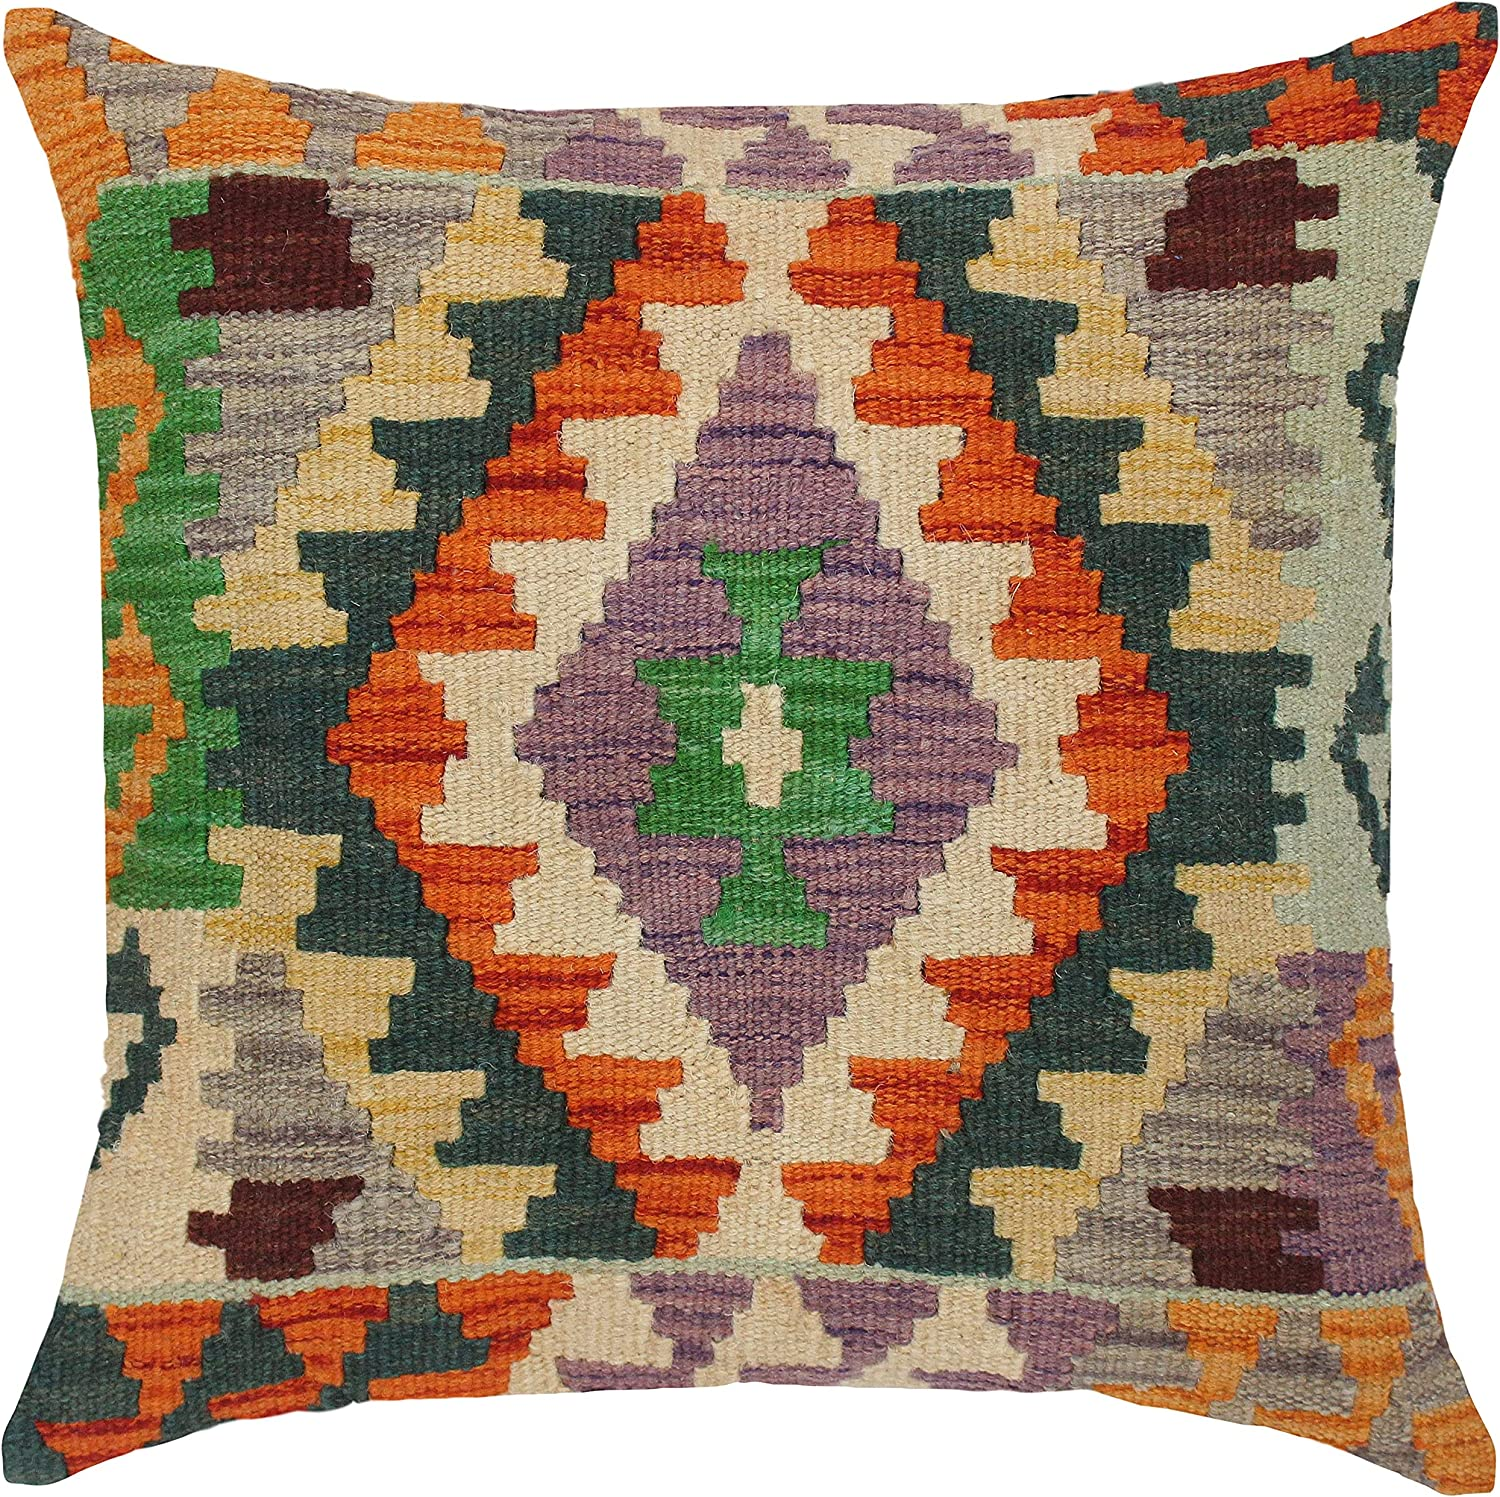 Southwestern Turkish y Hand Kilim Throw Pillow Woven Max 80% 2021new shipping free shipping OFF